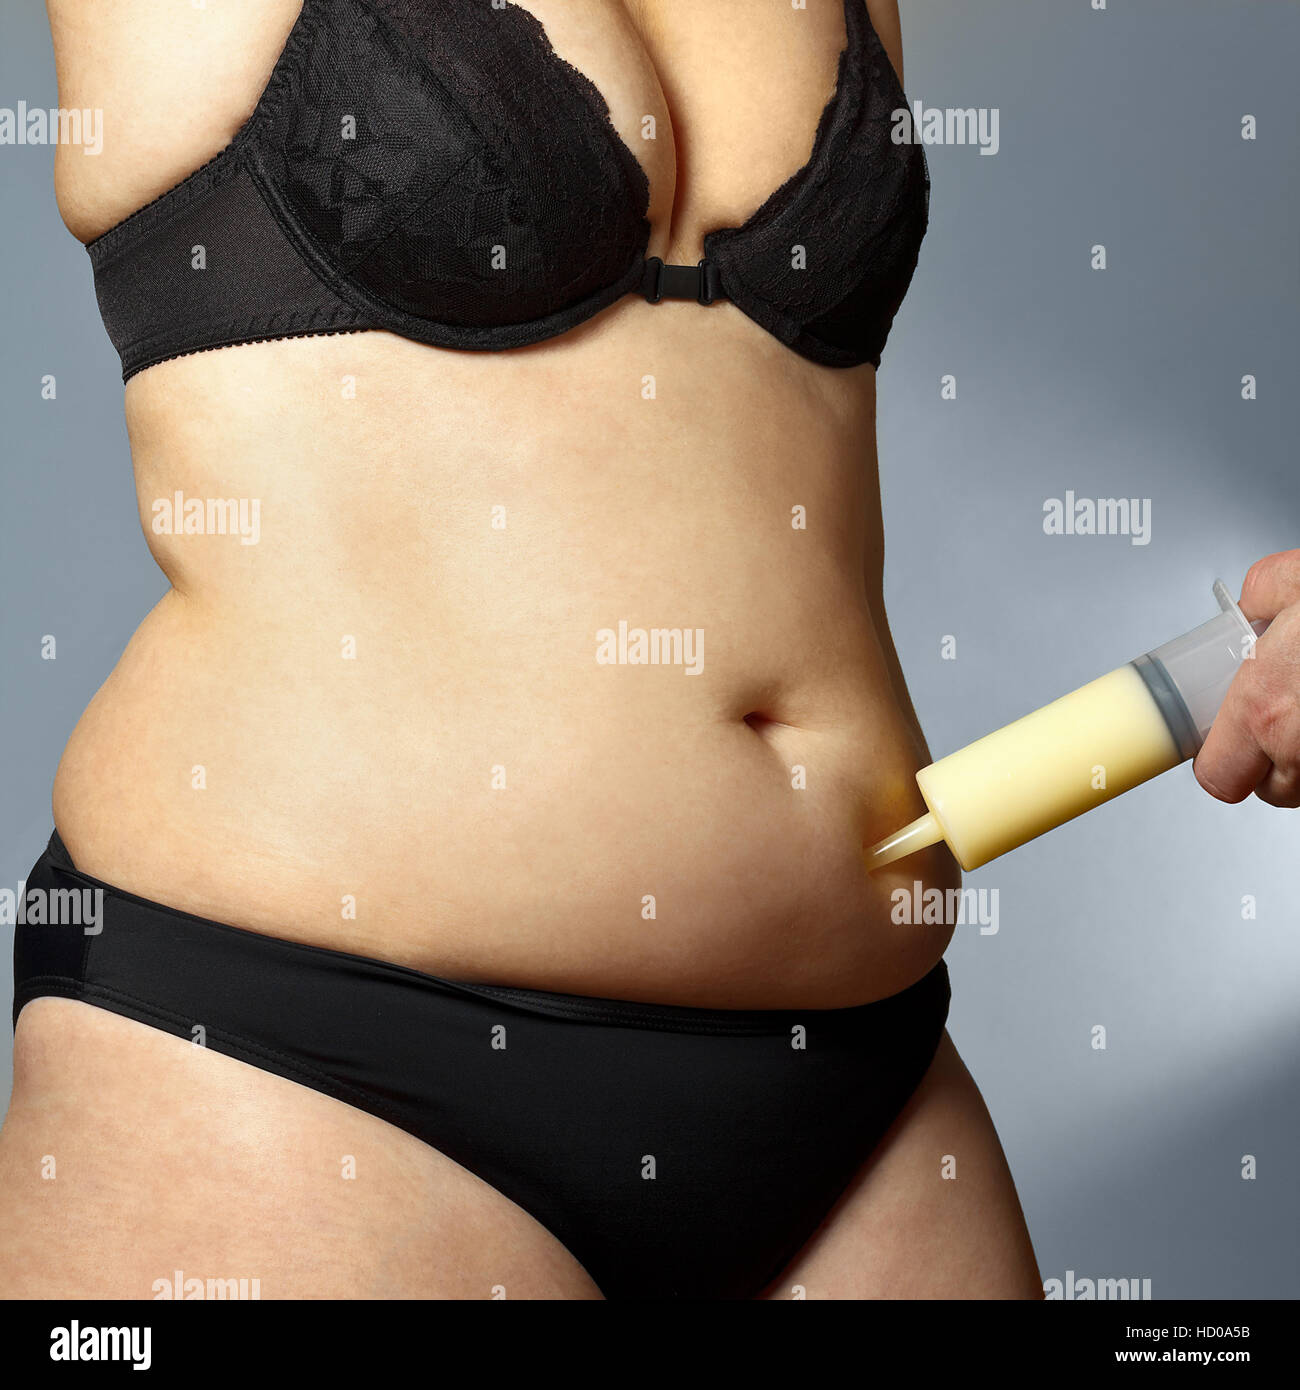 Body of a rotund woman in bra and pants with a male hand holding a syringe with fat sucked out of her belly, liposuction - Stock Image